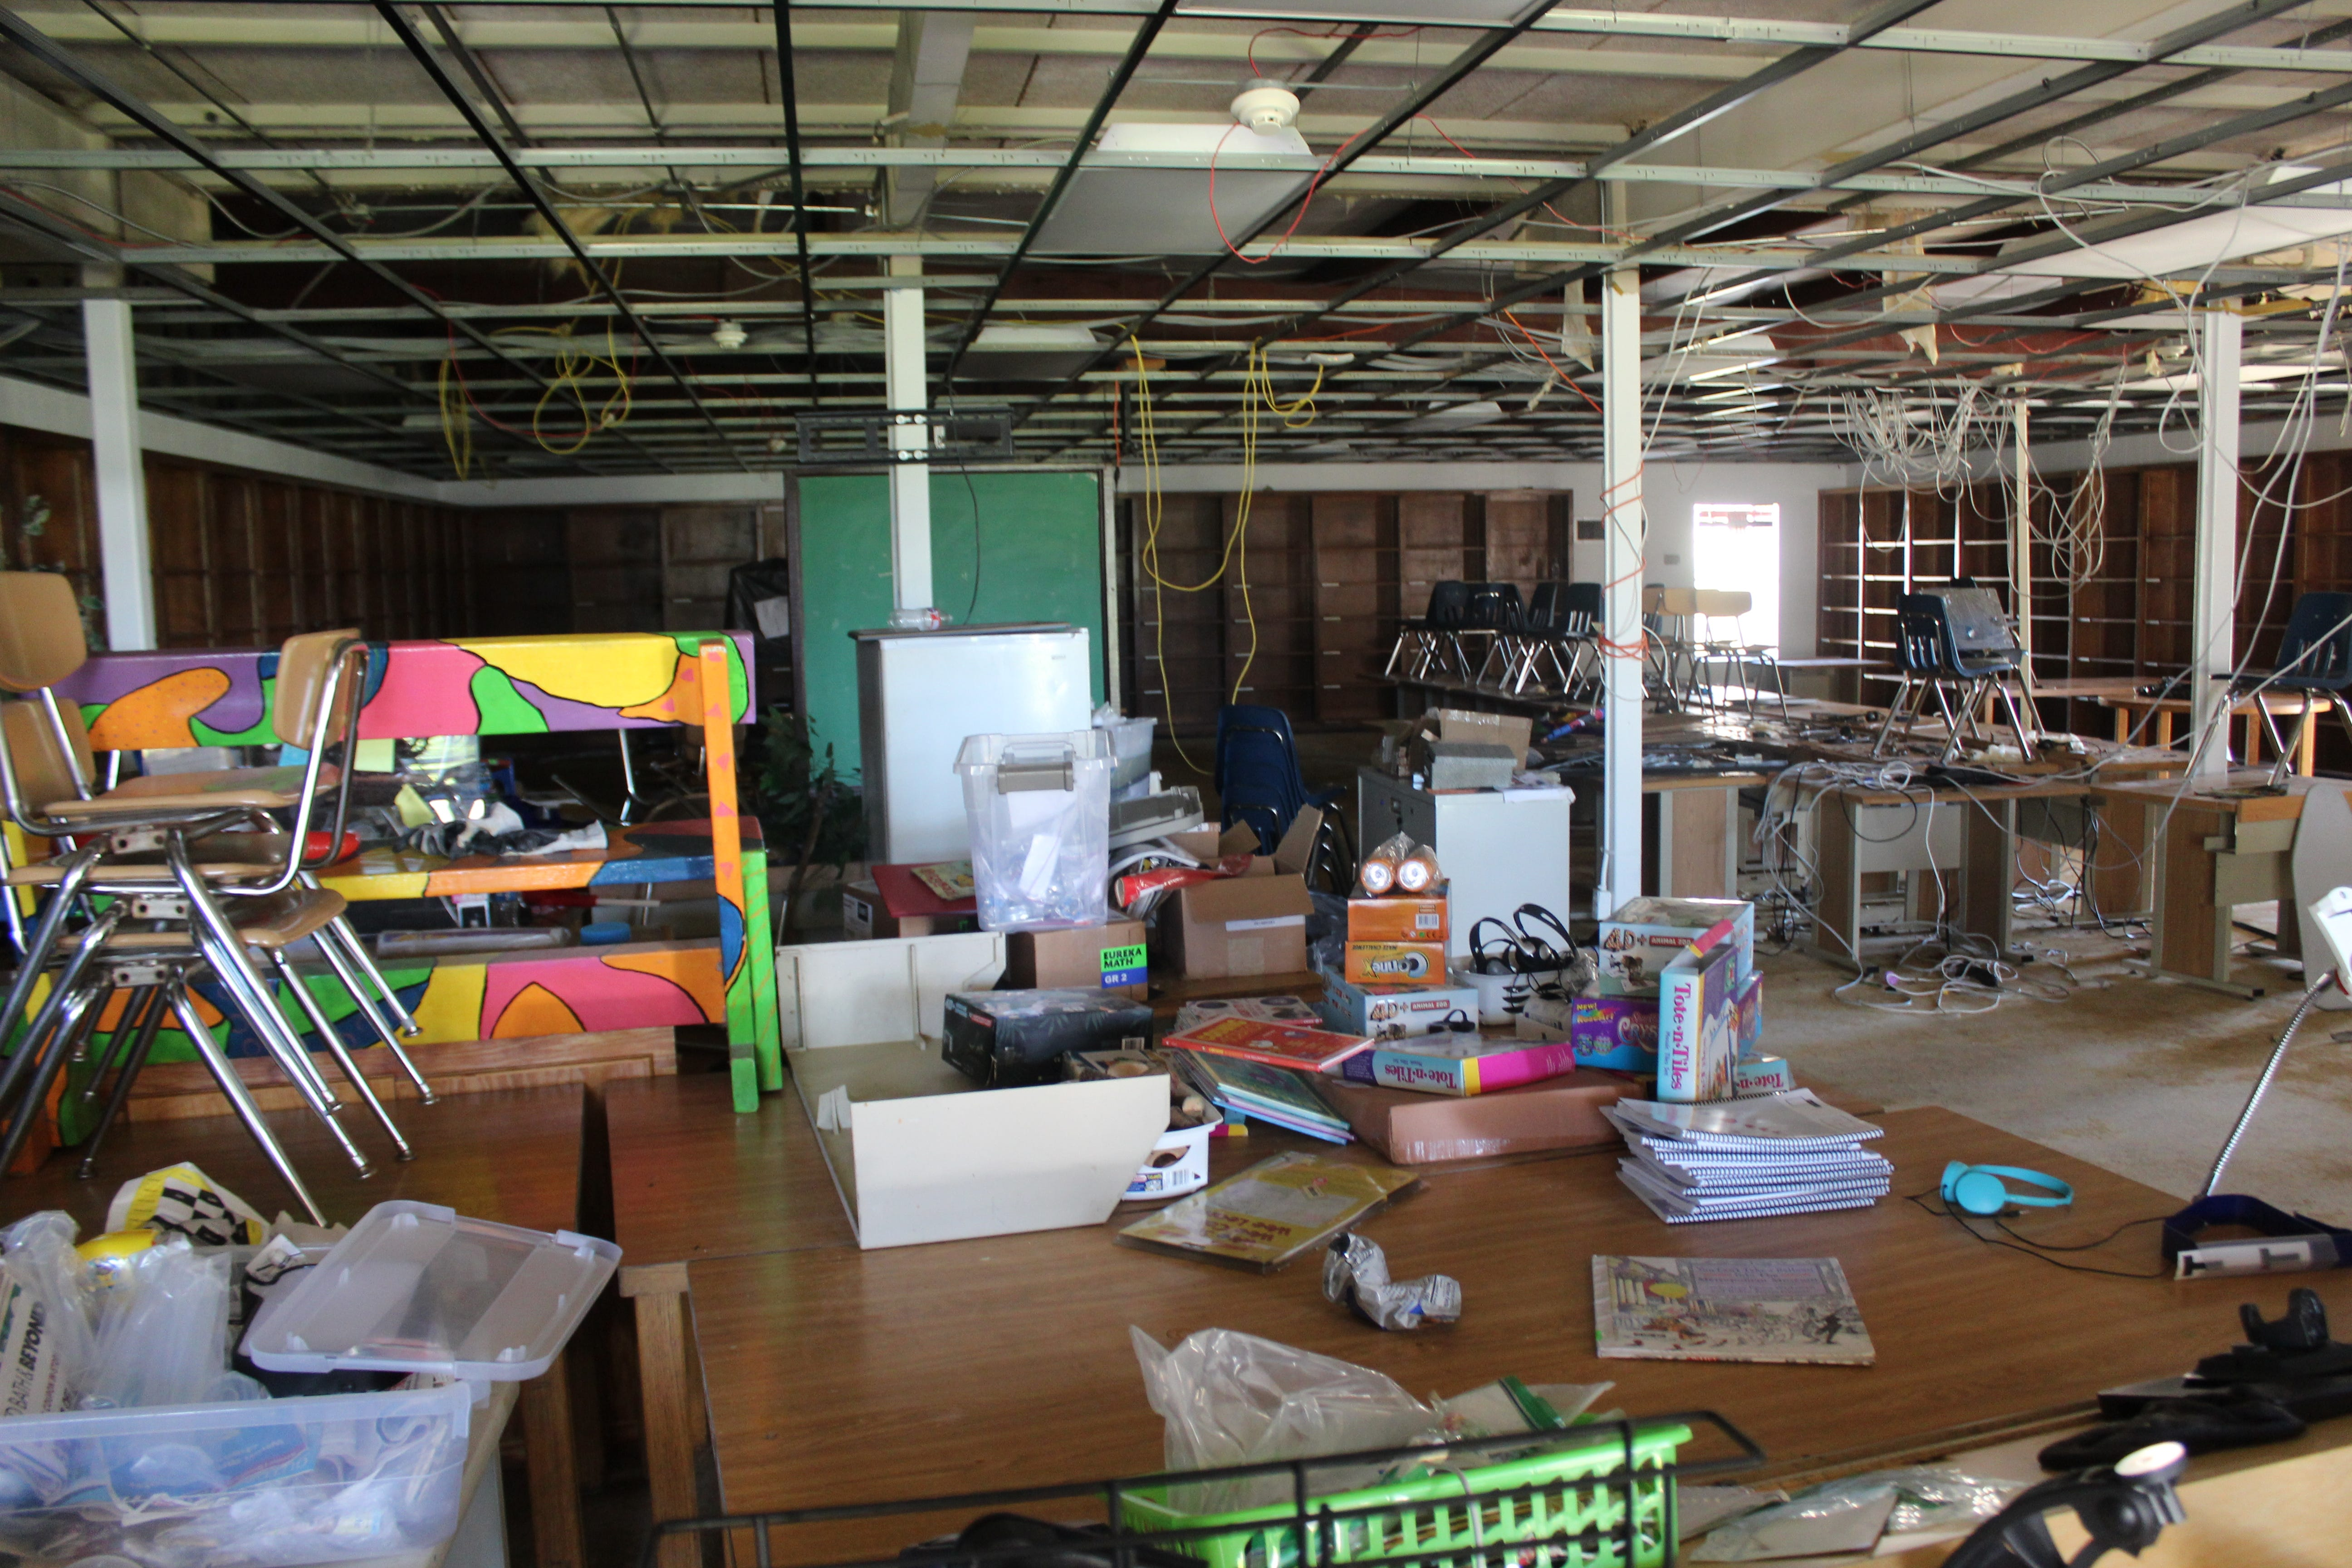 Hurricane Laura trashed this Louisiana school s library. One teacher s plea on social media brought help (and books) from across the US.